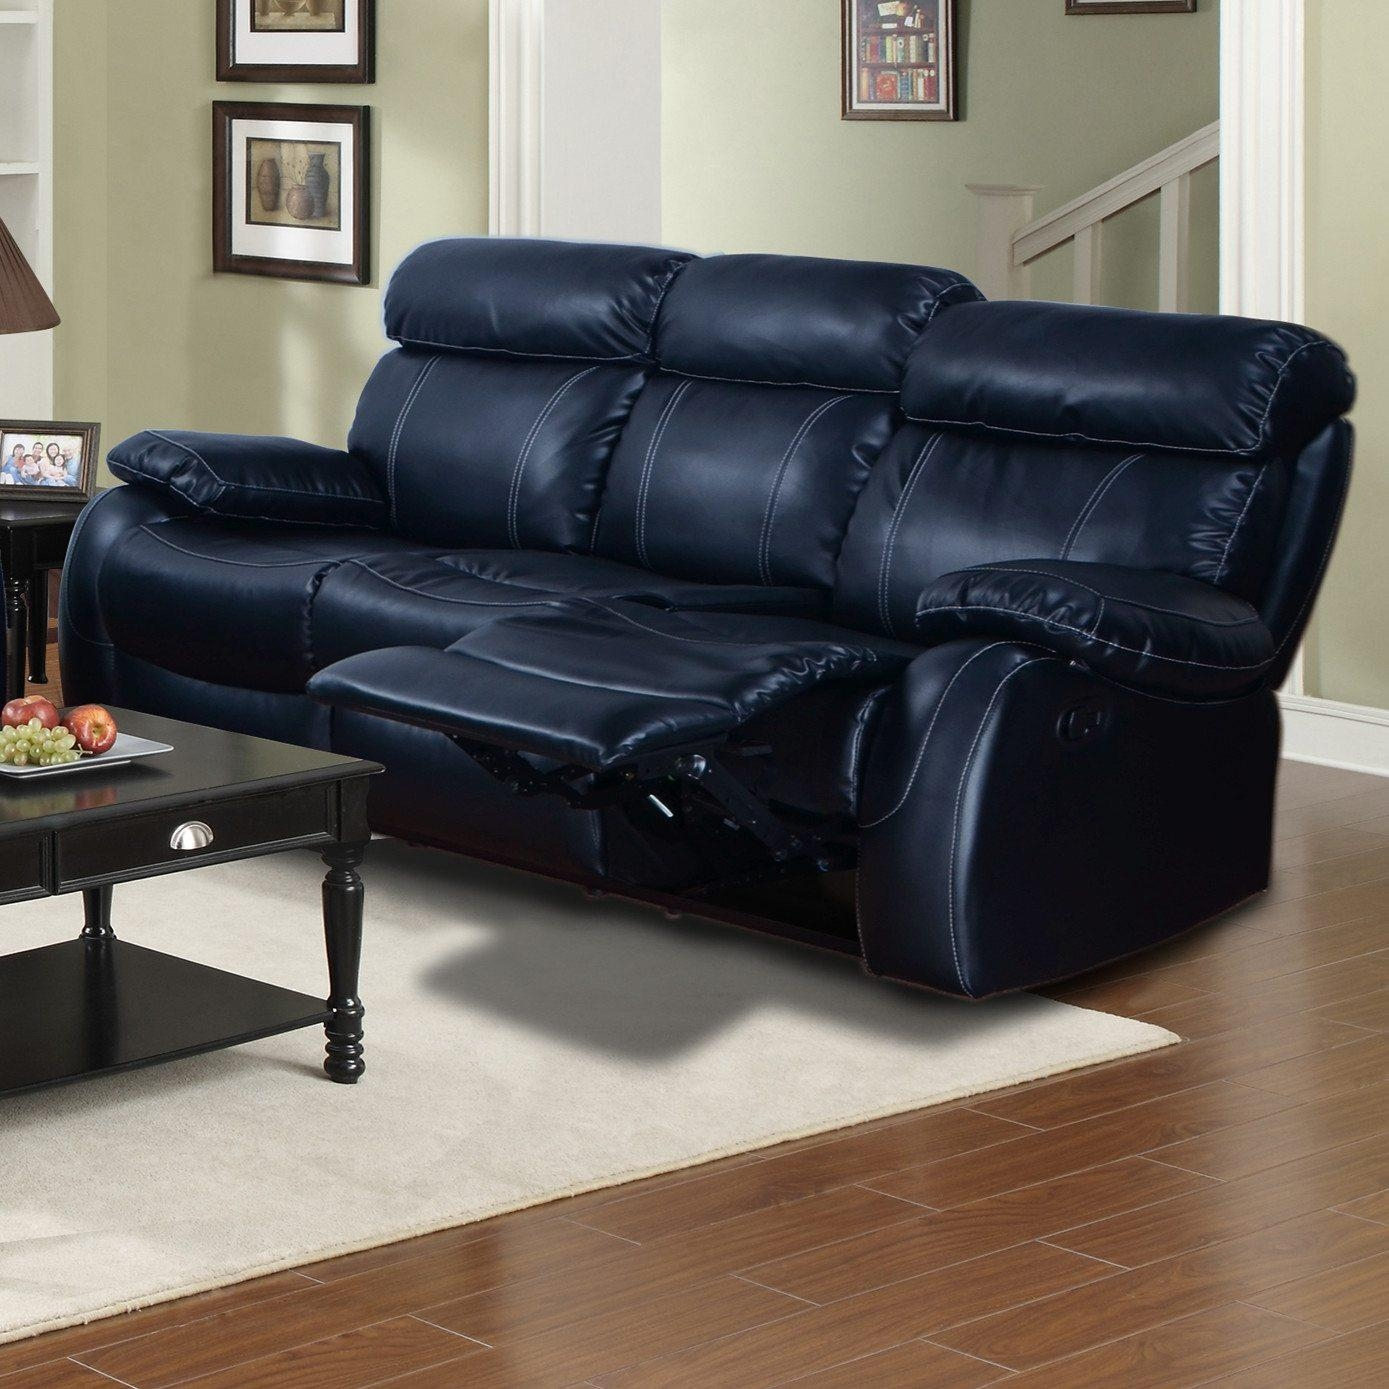 Berkline Reclining Sofa With Inspiration Ideas 15901 | Kengire Within Berkline Reclining Sofas (Image 2 of 20)